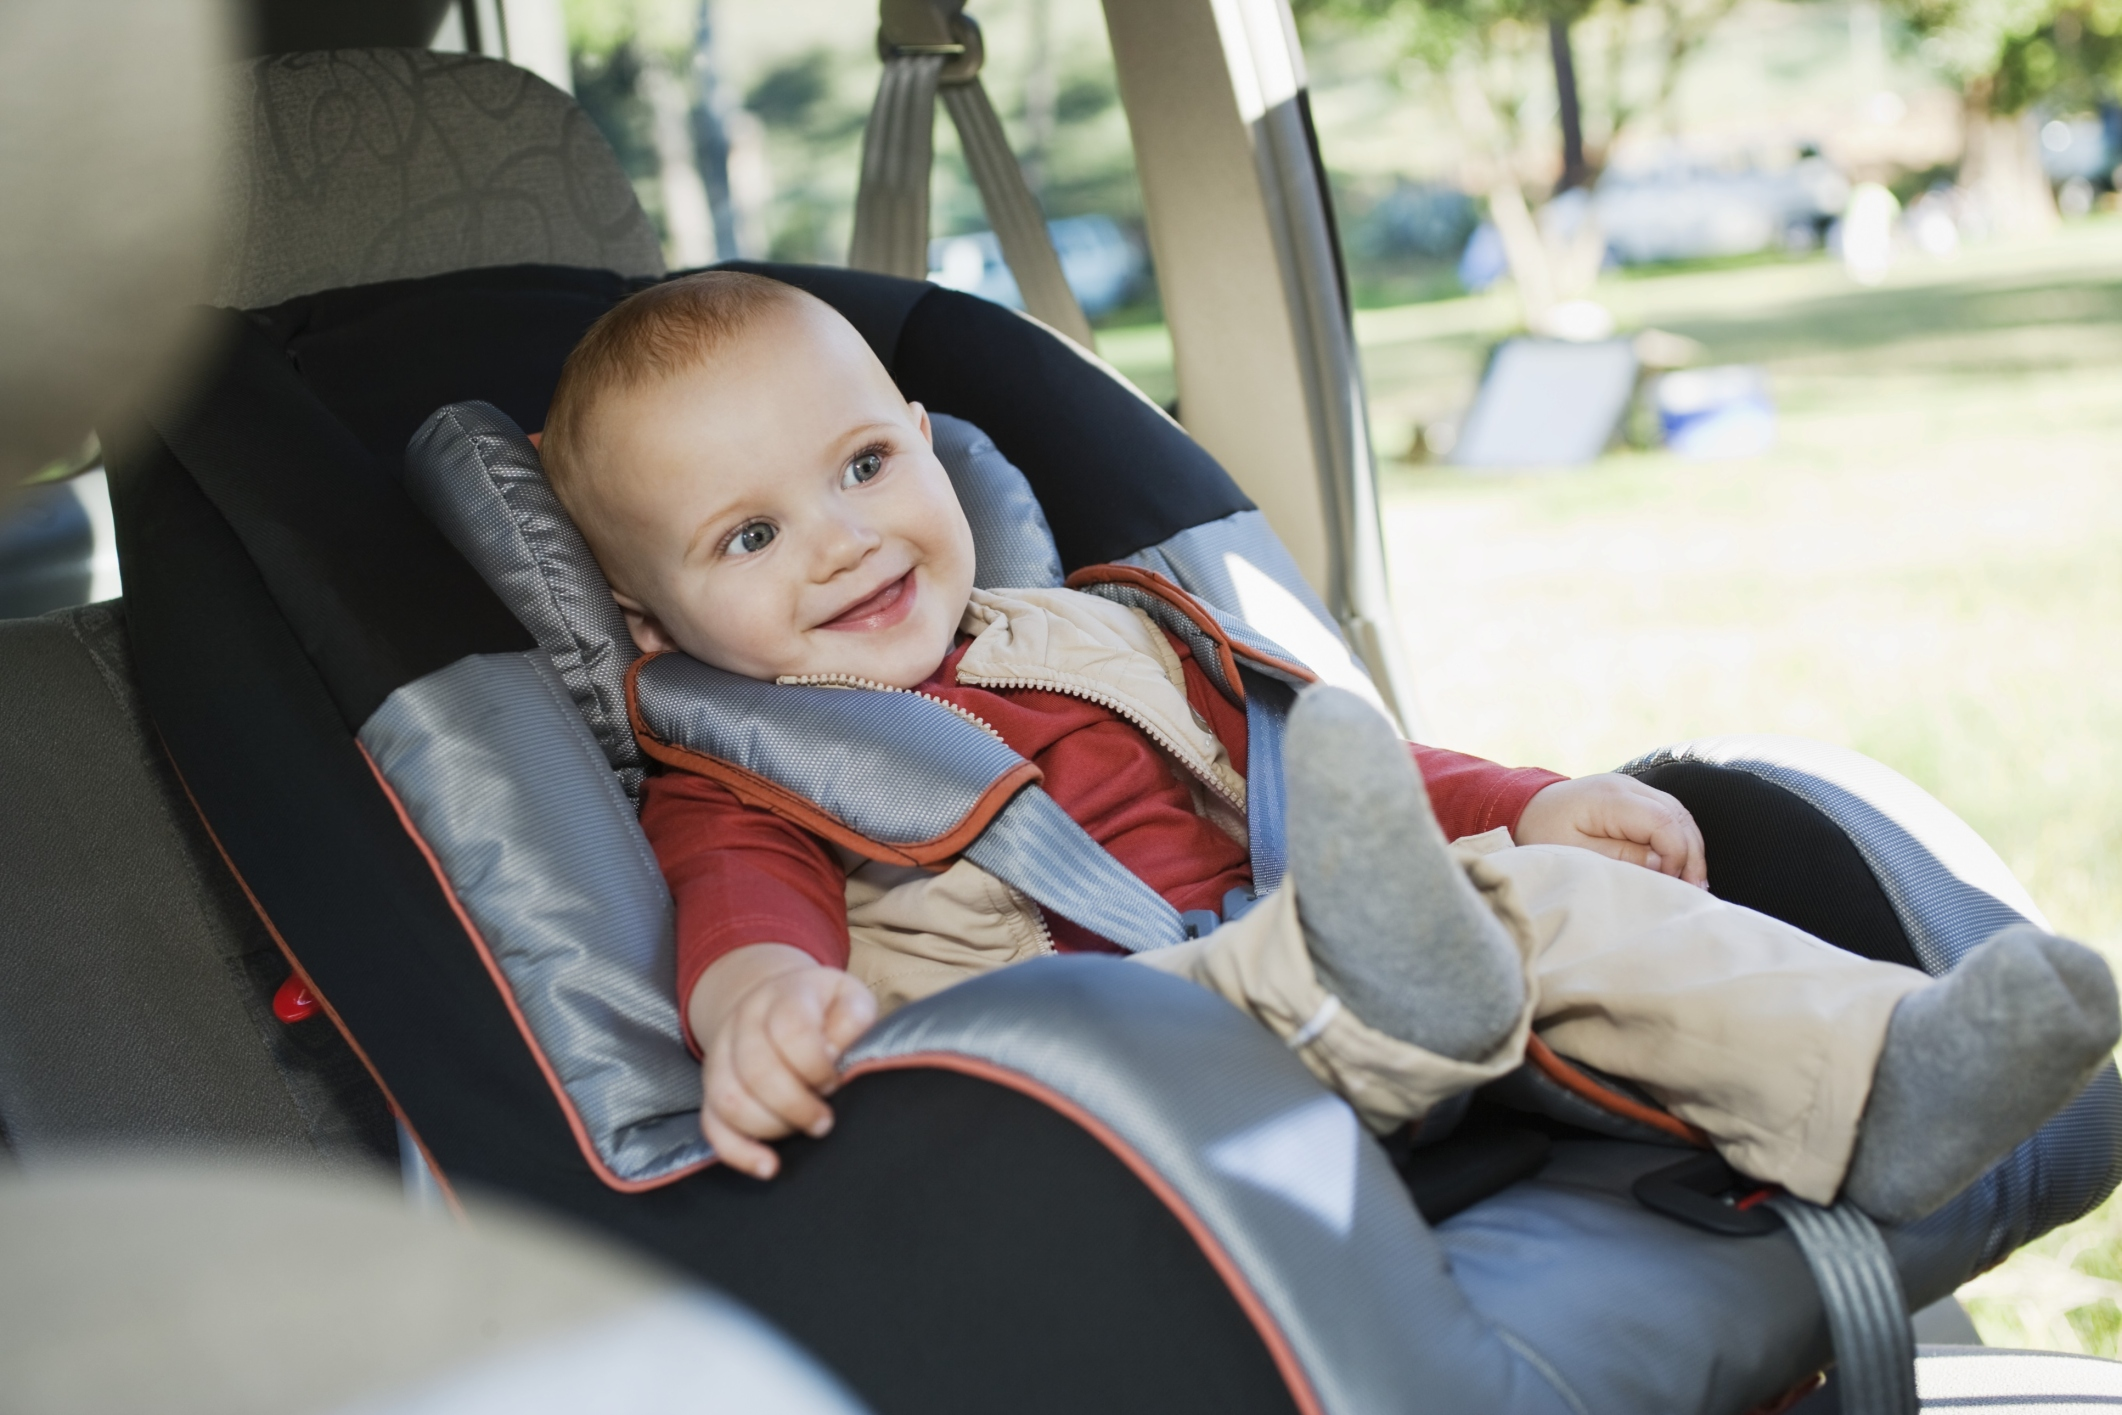 Keeping Kids Safe: Car Seat Safety and More - Childcare Physicians